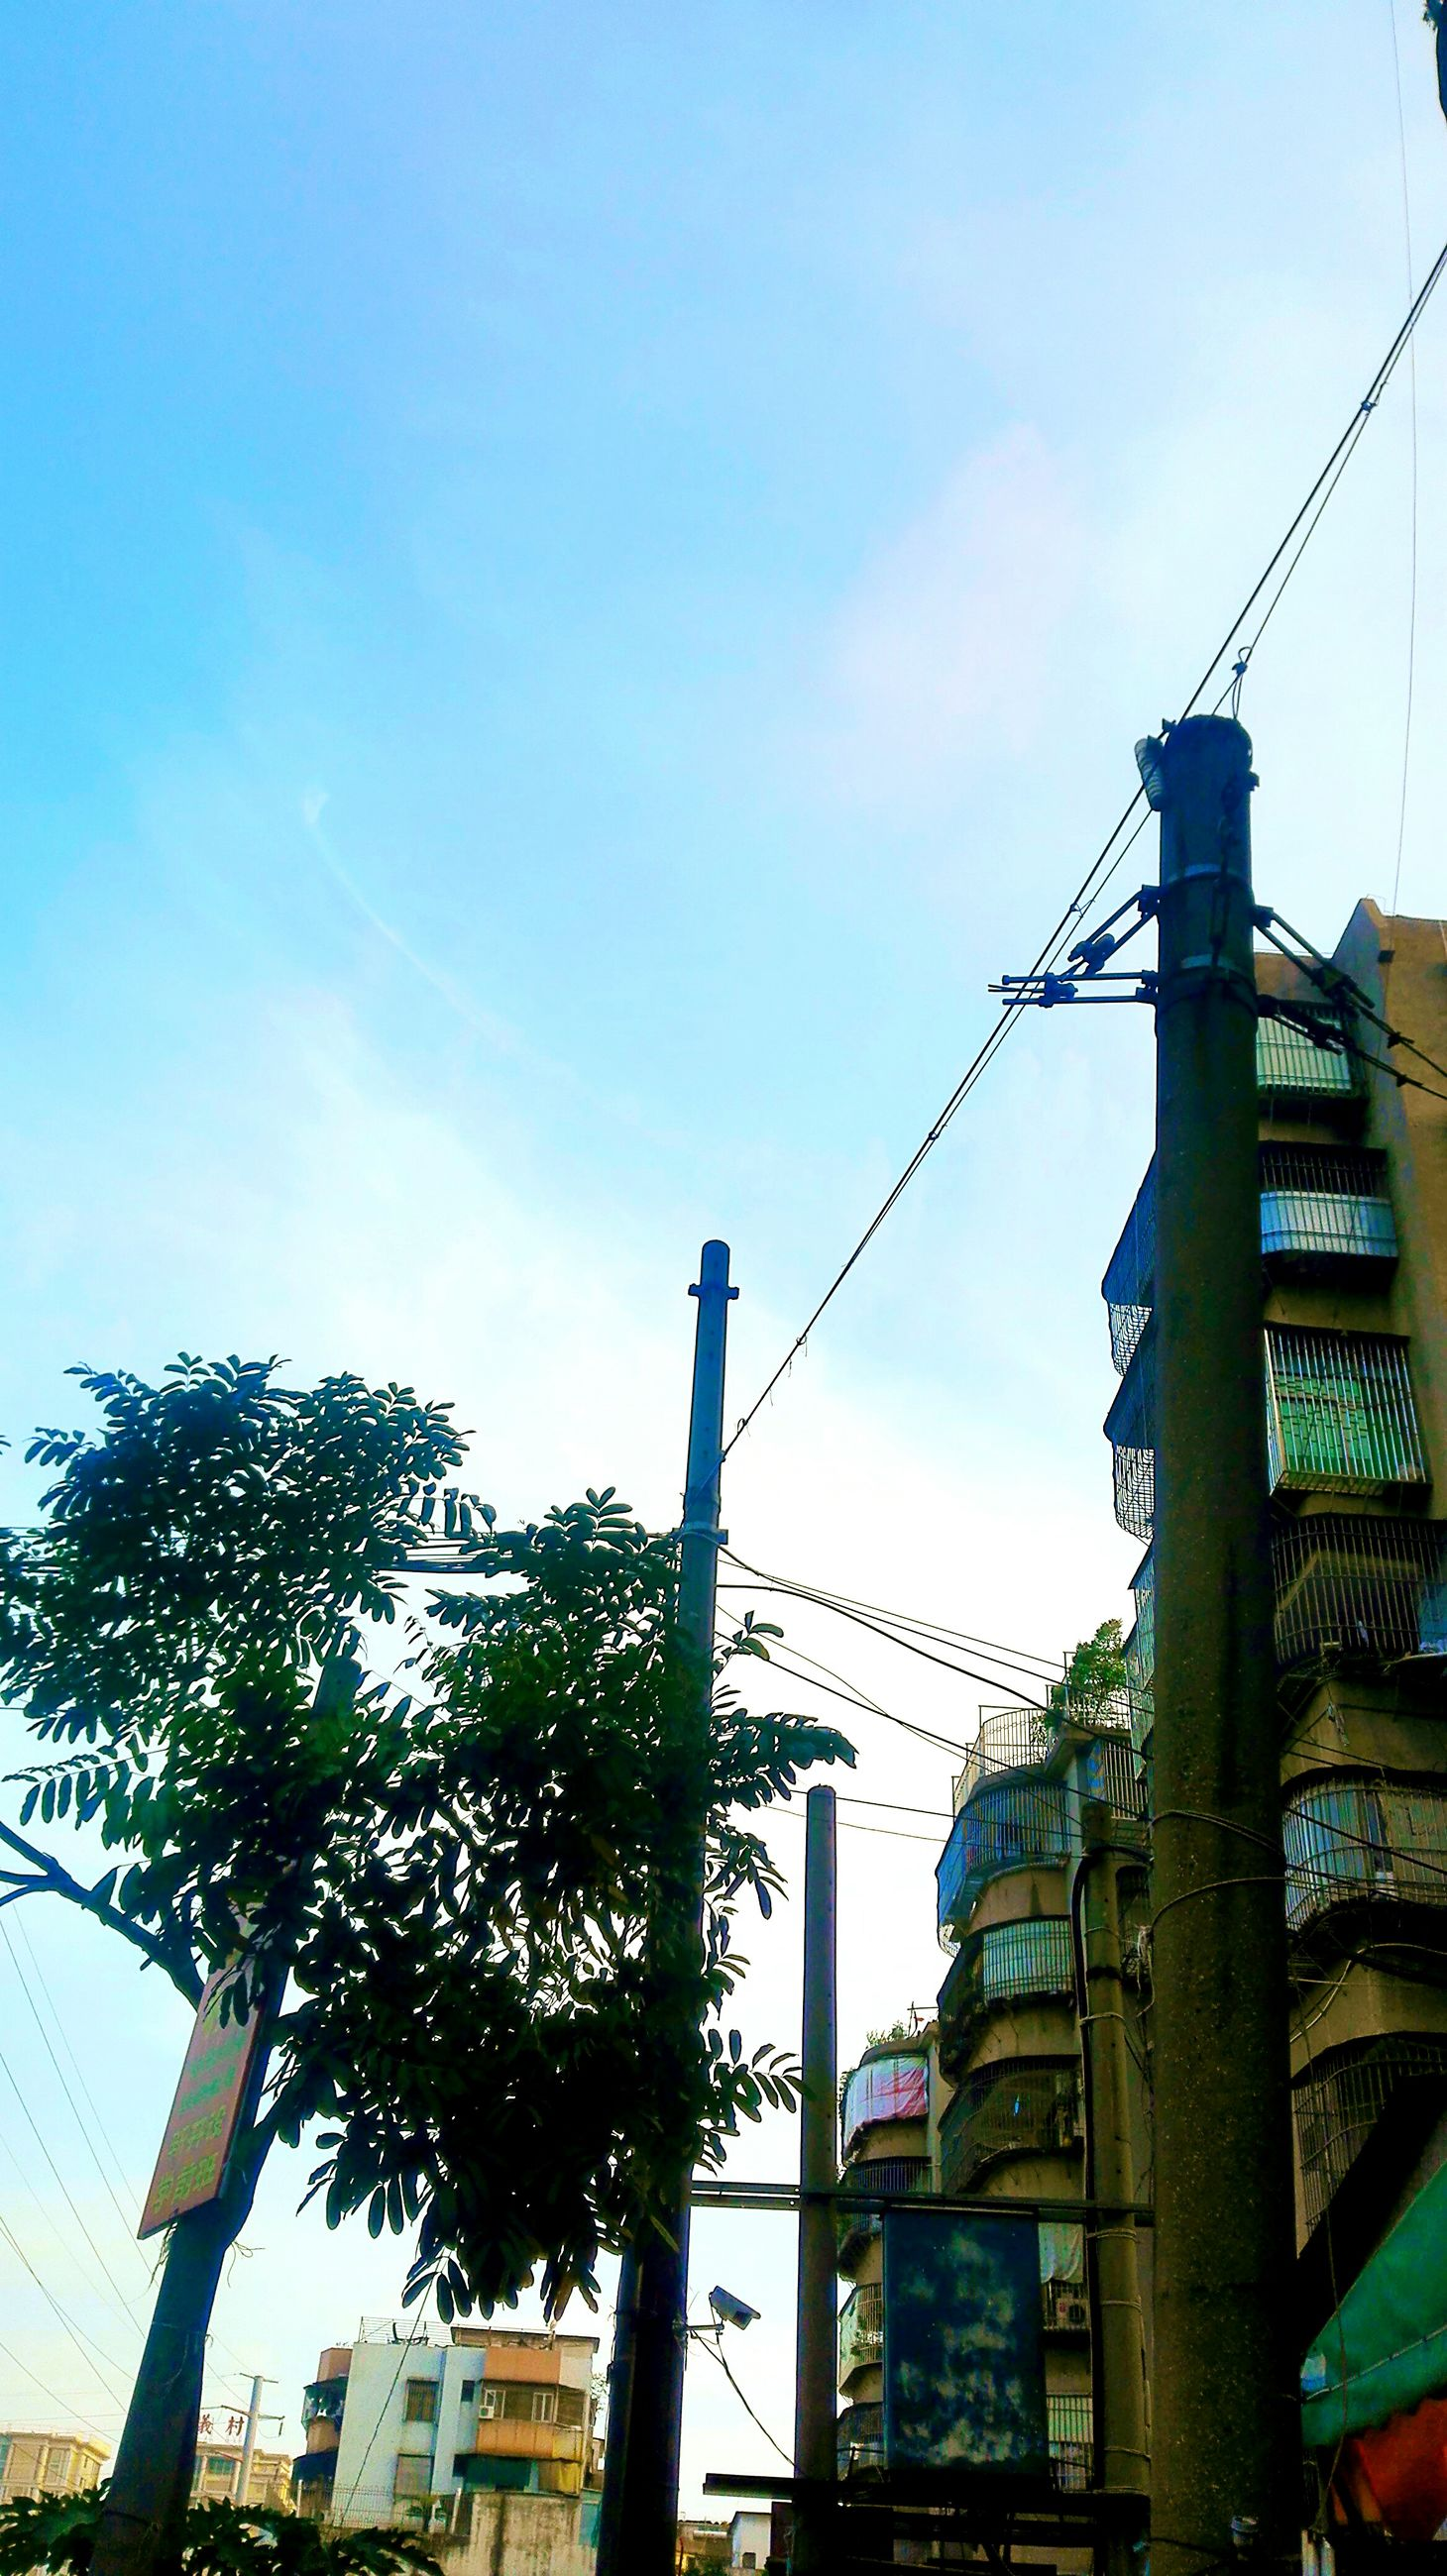 building exterior, architecture, built structure, low angle view, sky, city, street light, building, clear sky, construction site, tall - high, outdoors, sunlight, development, blue, industry, residential building, day, power line, crane - construction machinery